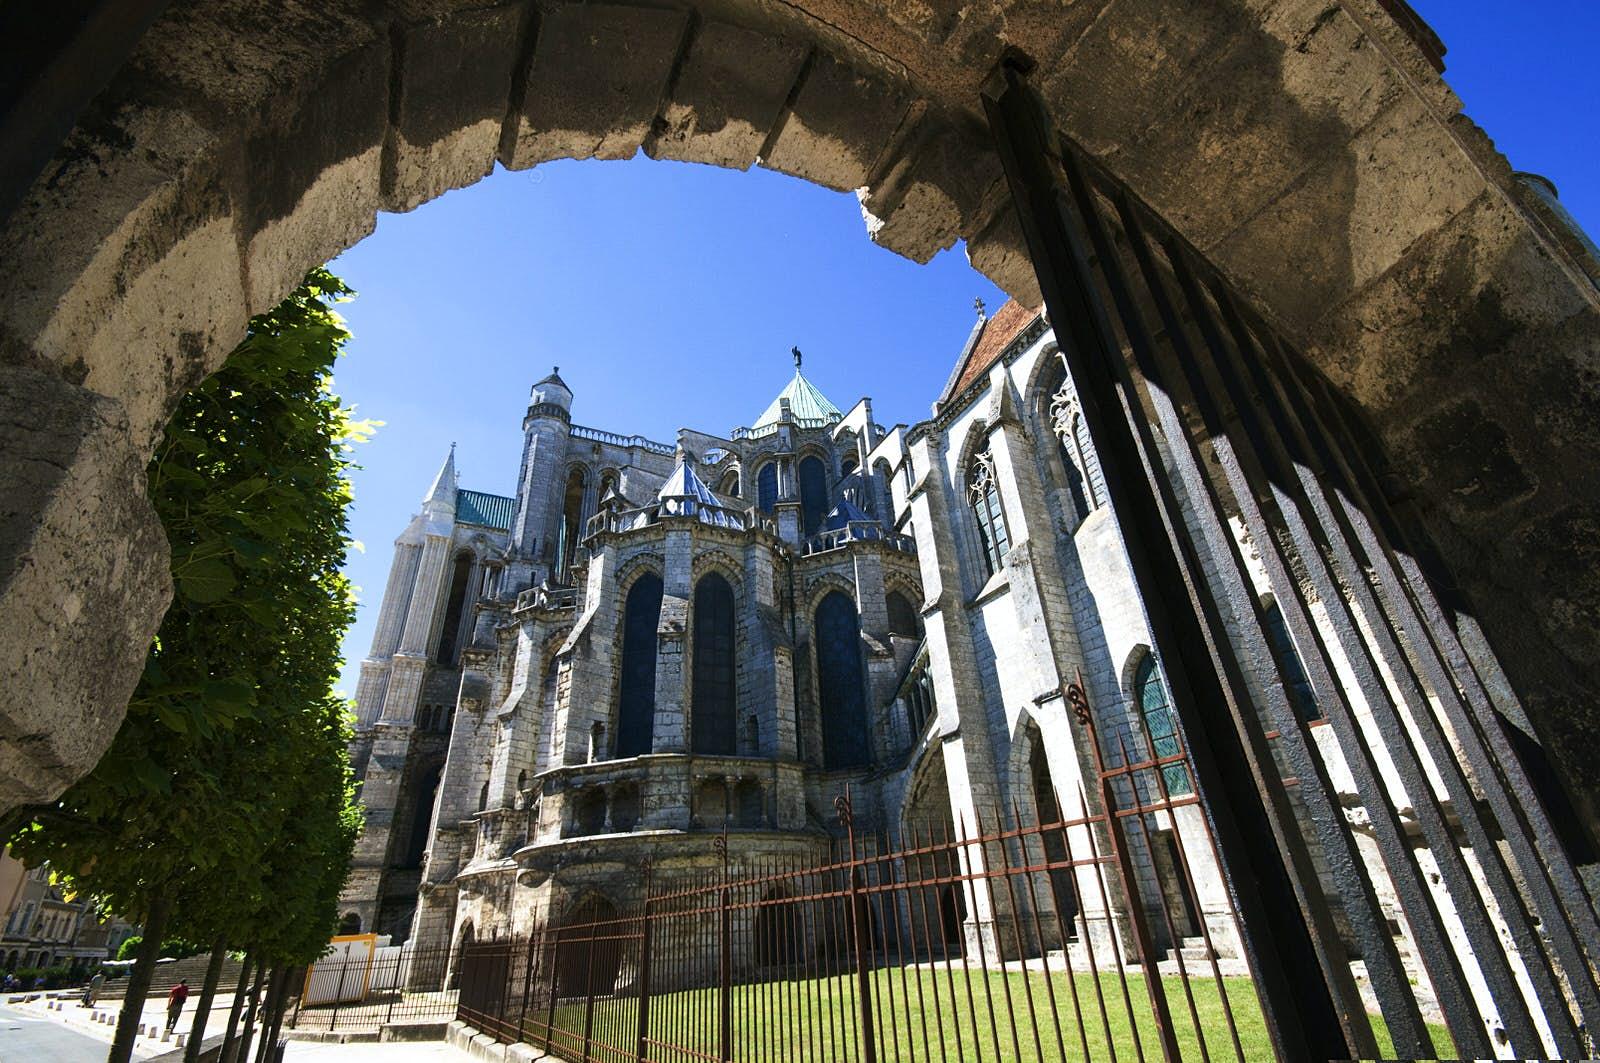 Chartres' Romanesque-style Cathédrale Notre Dame viewed from beneath a grey stone arch.